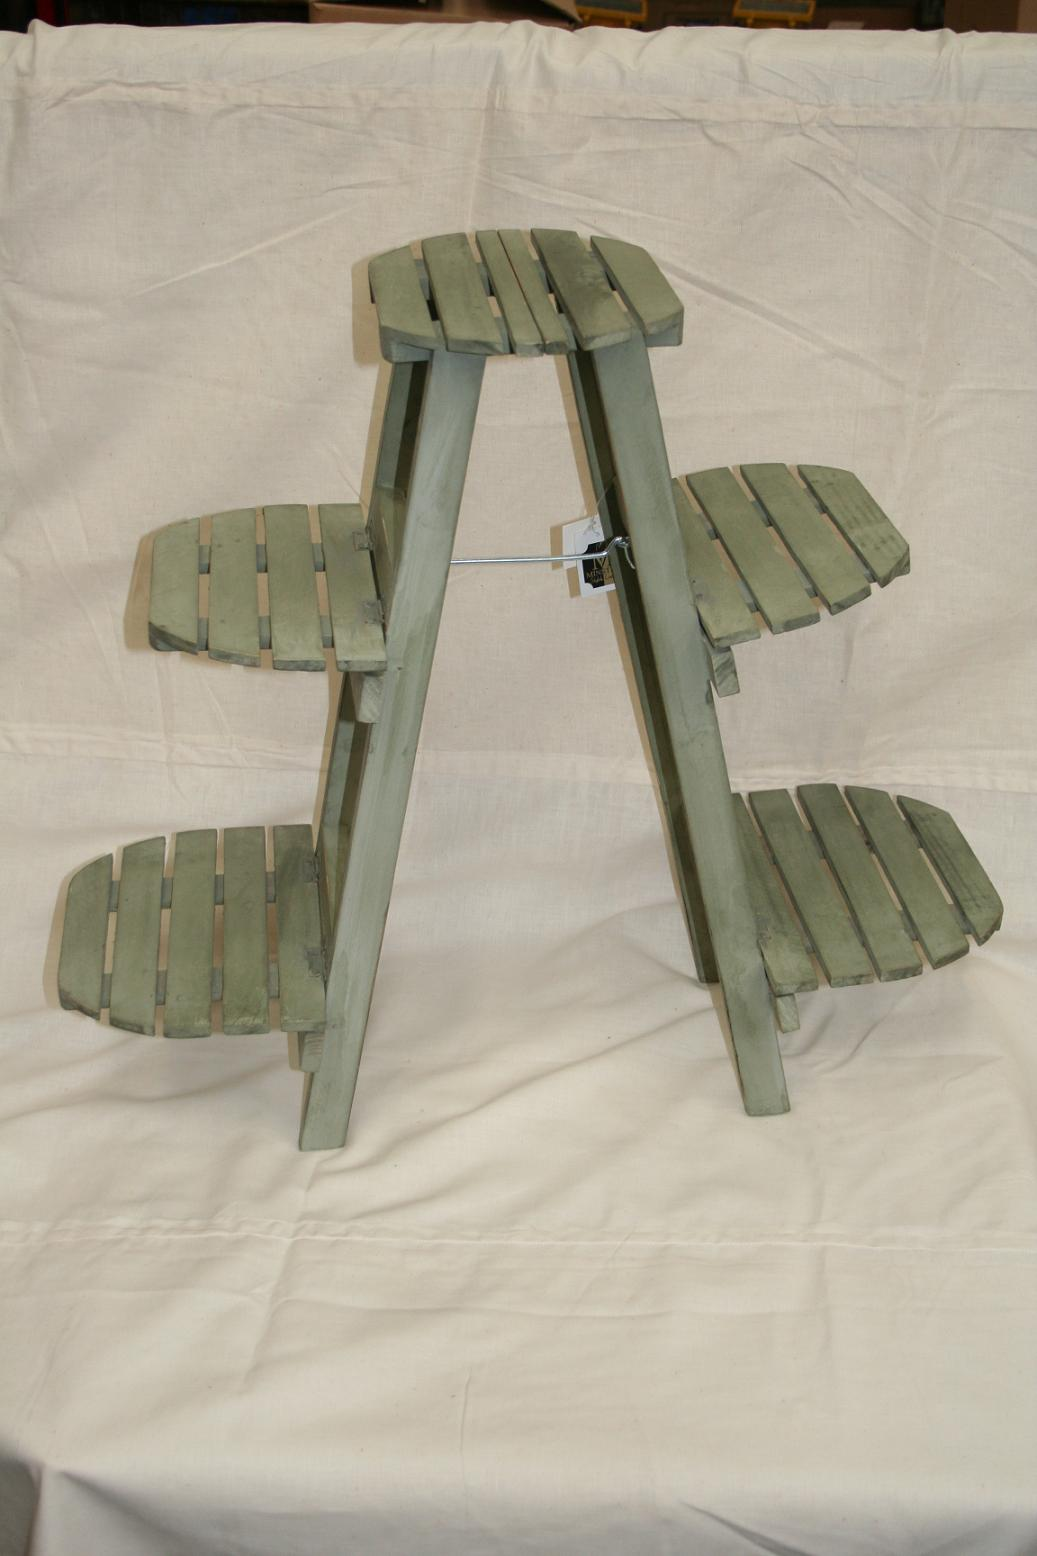 tantra chair plans dining room covers south africa diy woodworking more egg crate shelves popular